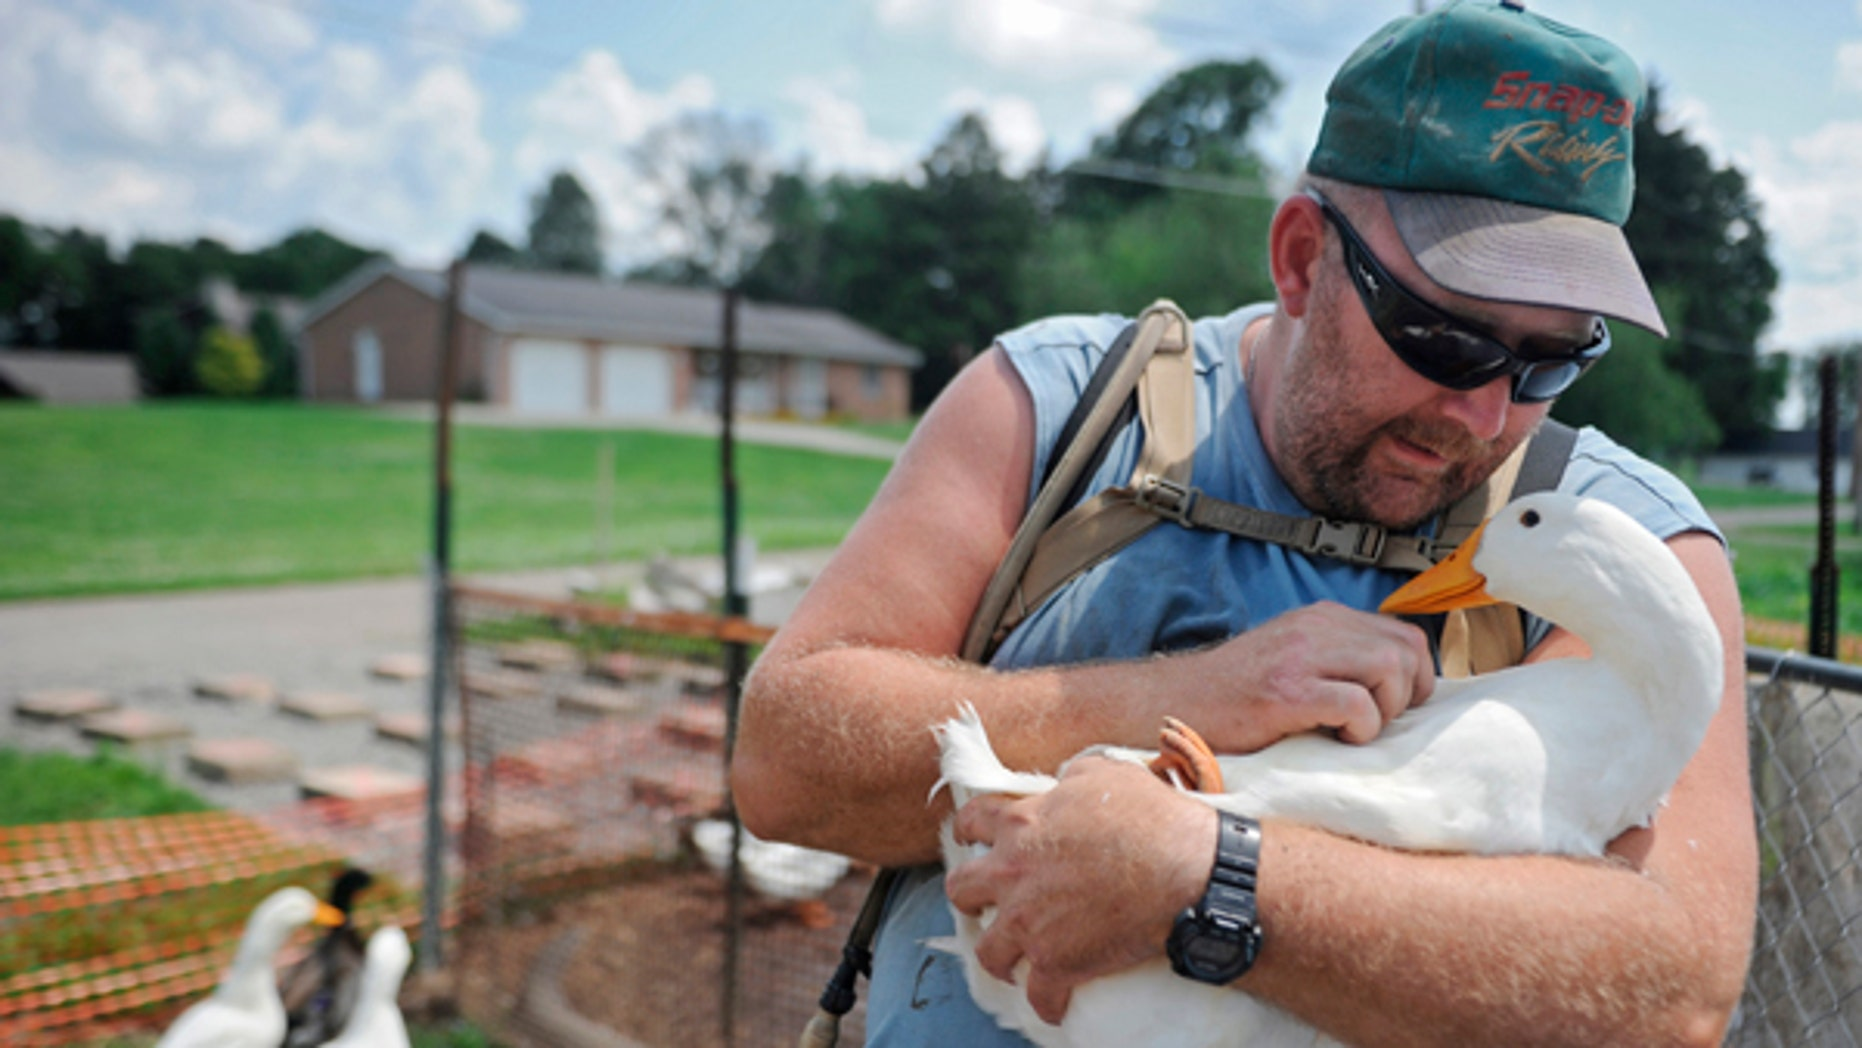 Iraq War veteran Darin Welker holds one of his ducks at his home in West Lafayette, Ohio. West Lafayette Village Council members voted Tuesday to grant a variance allowing Welker to keep pet ducks he says help relieve his post-traumatic stress disorder and depression.